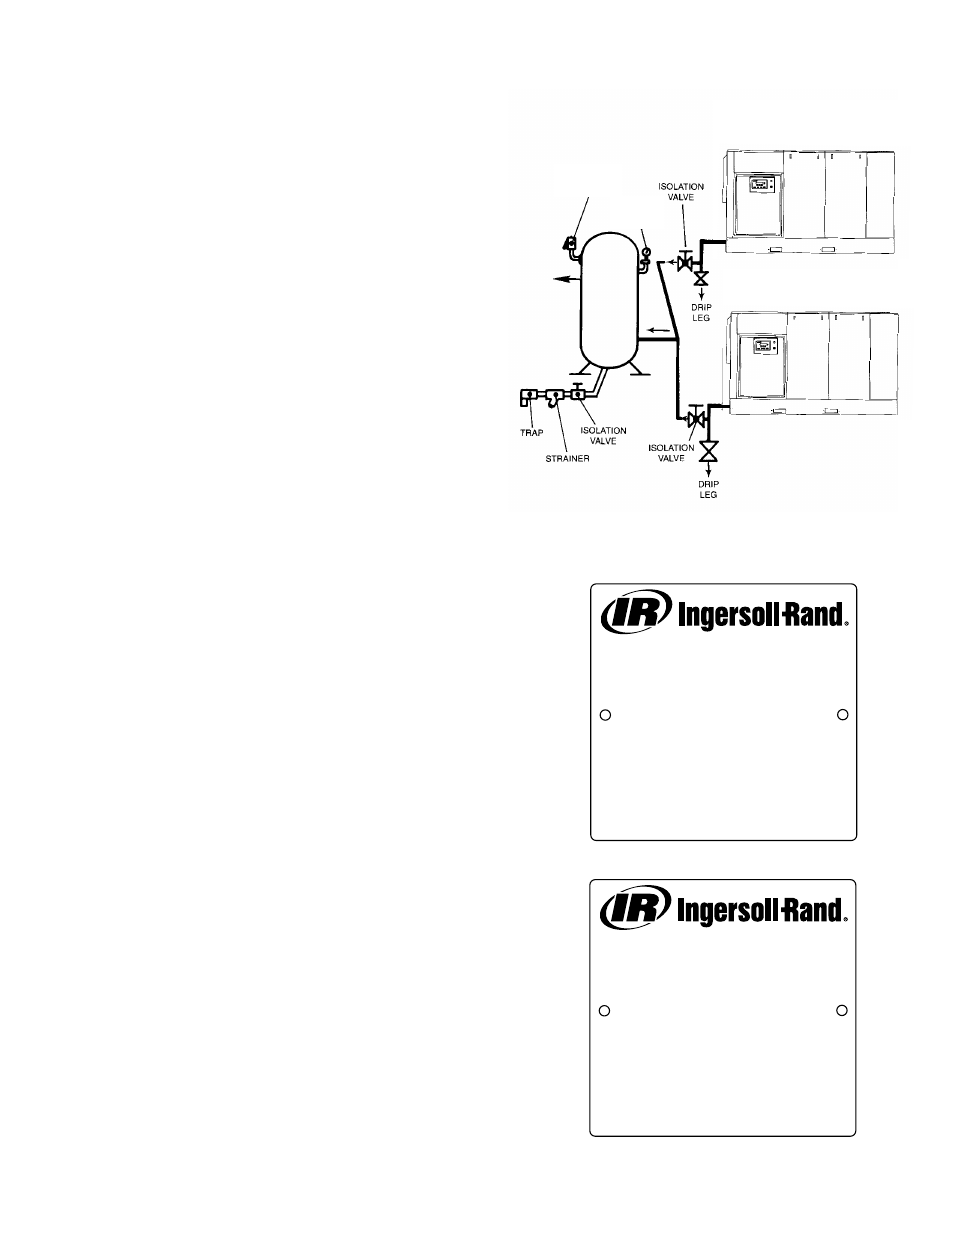 4 electrical installation | Ingersoll-Rand 100-200 HP/75-160 KW User Manual  | Page 13 / 93